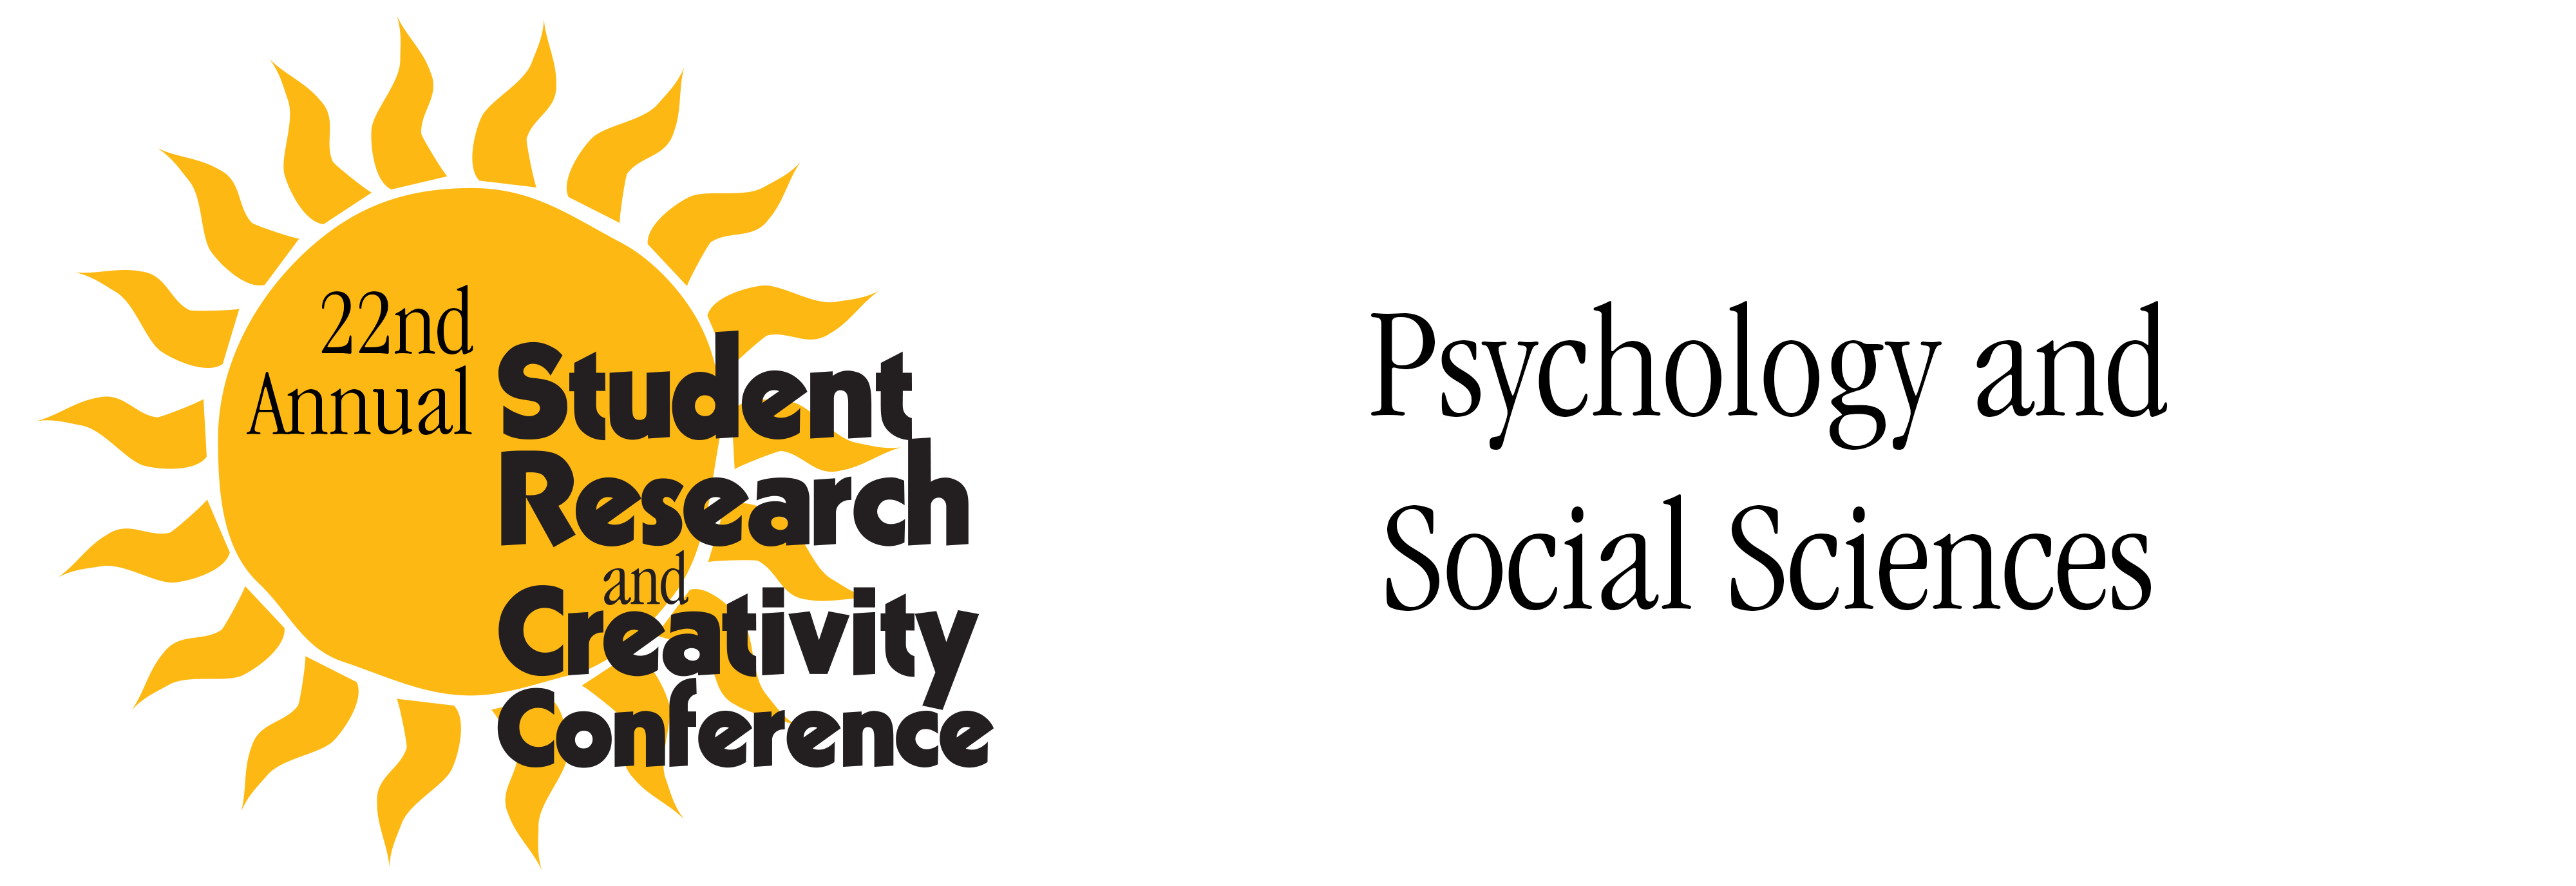 Psychology and Social Sciences